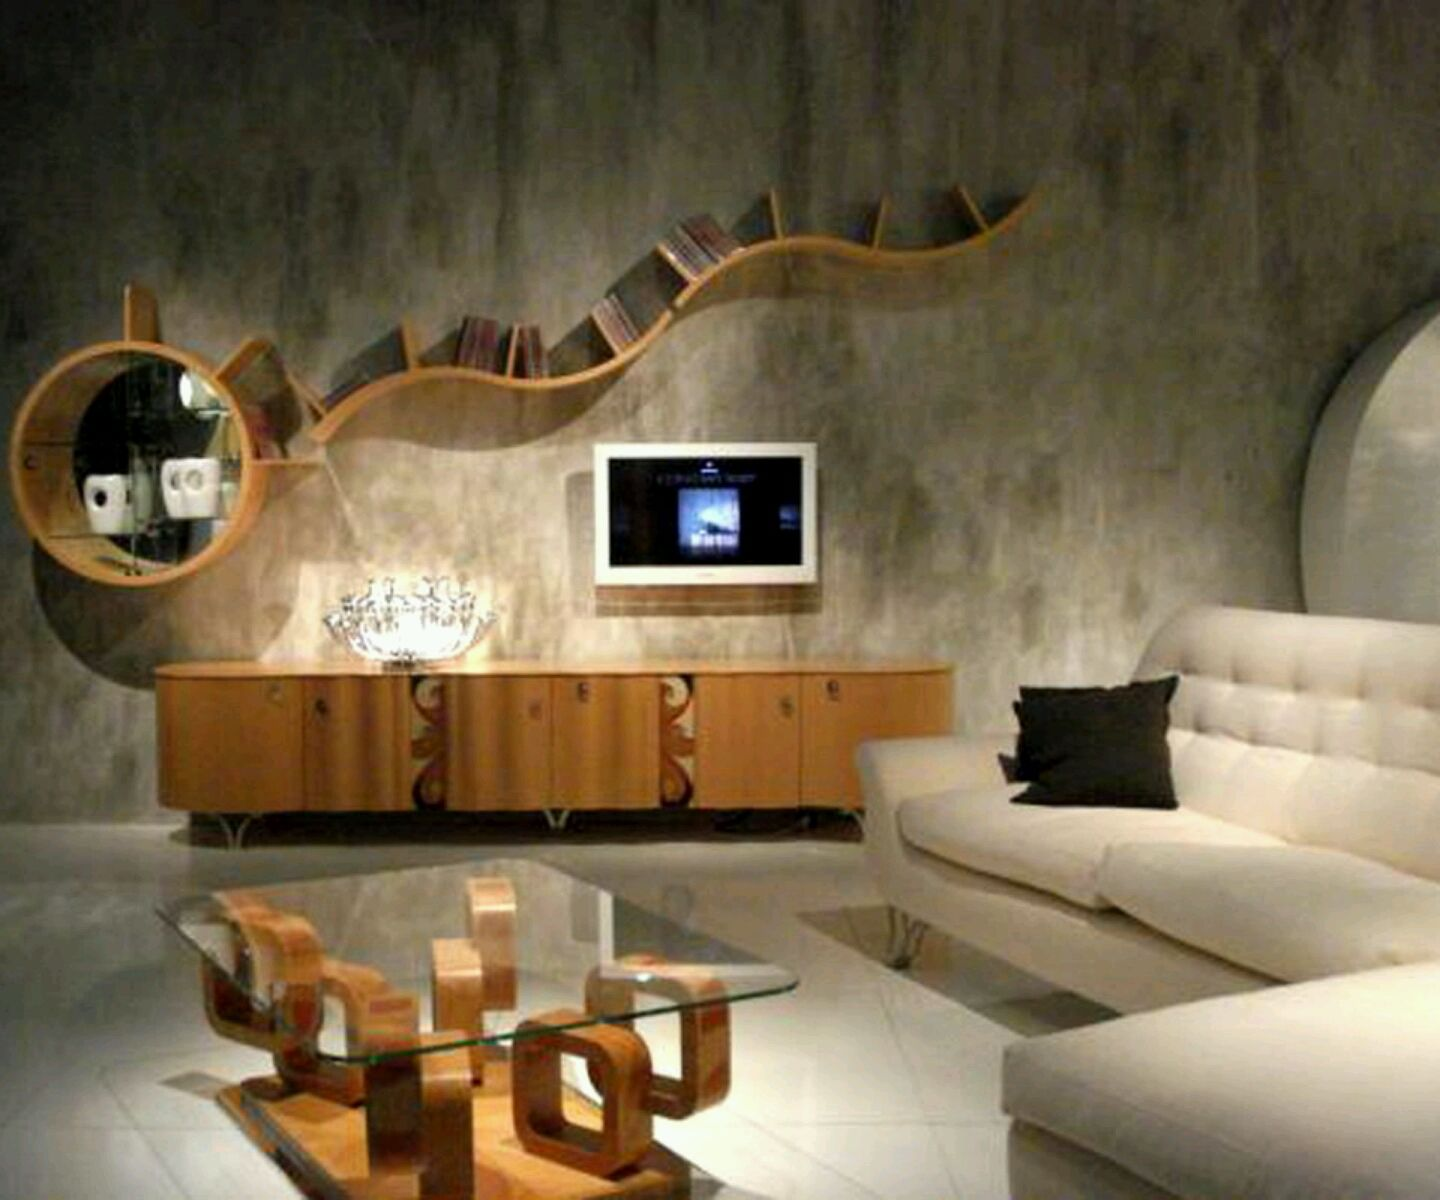 inspiring home interior design ideas home interior design ideas - New Home Design Ideas